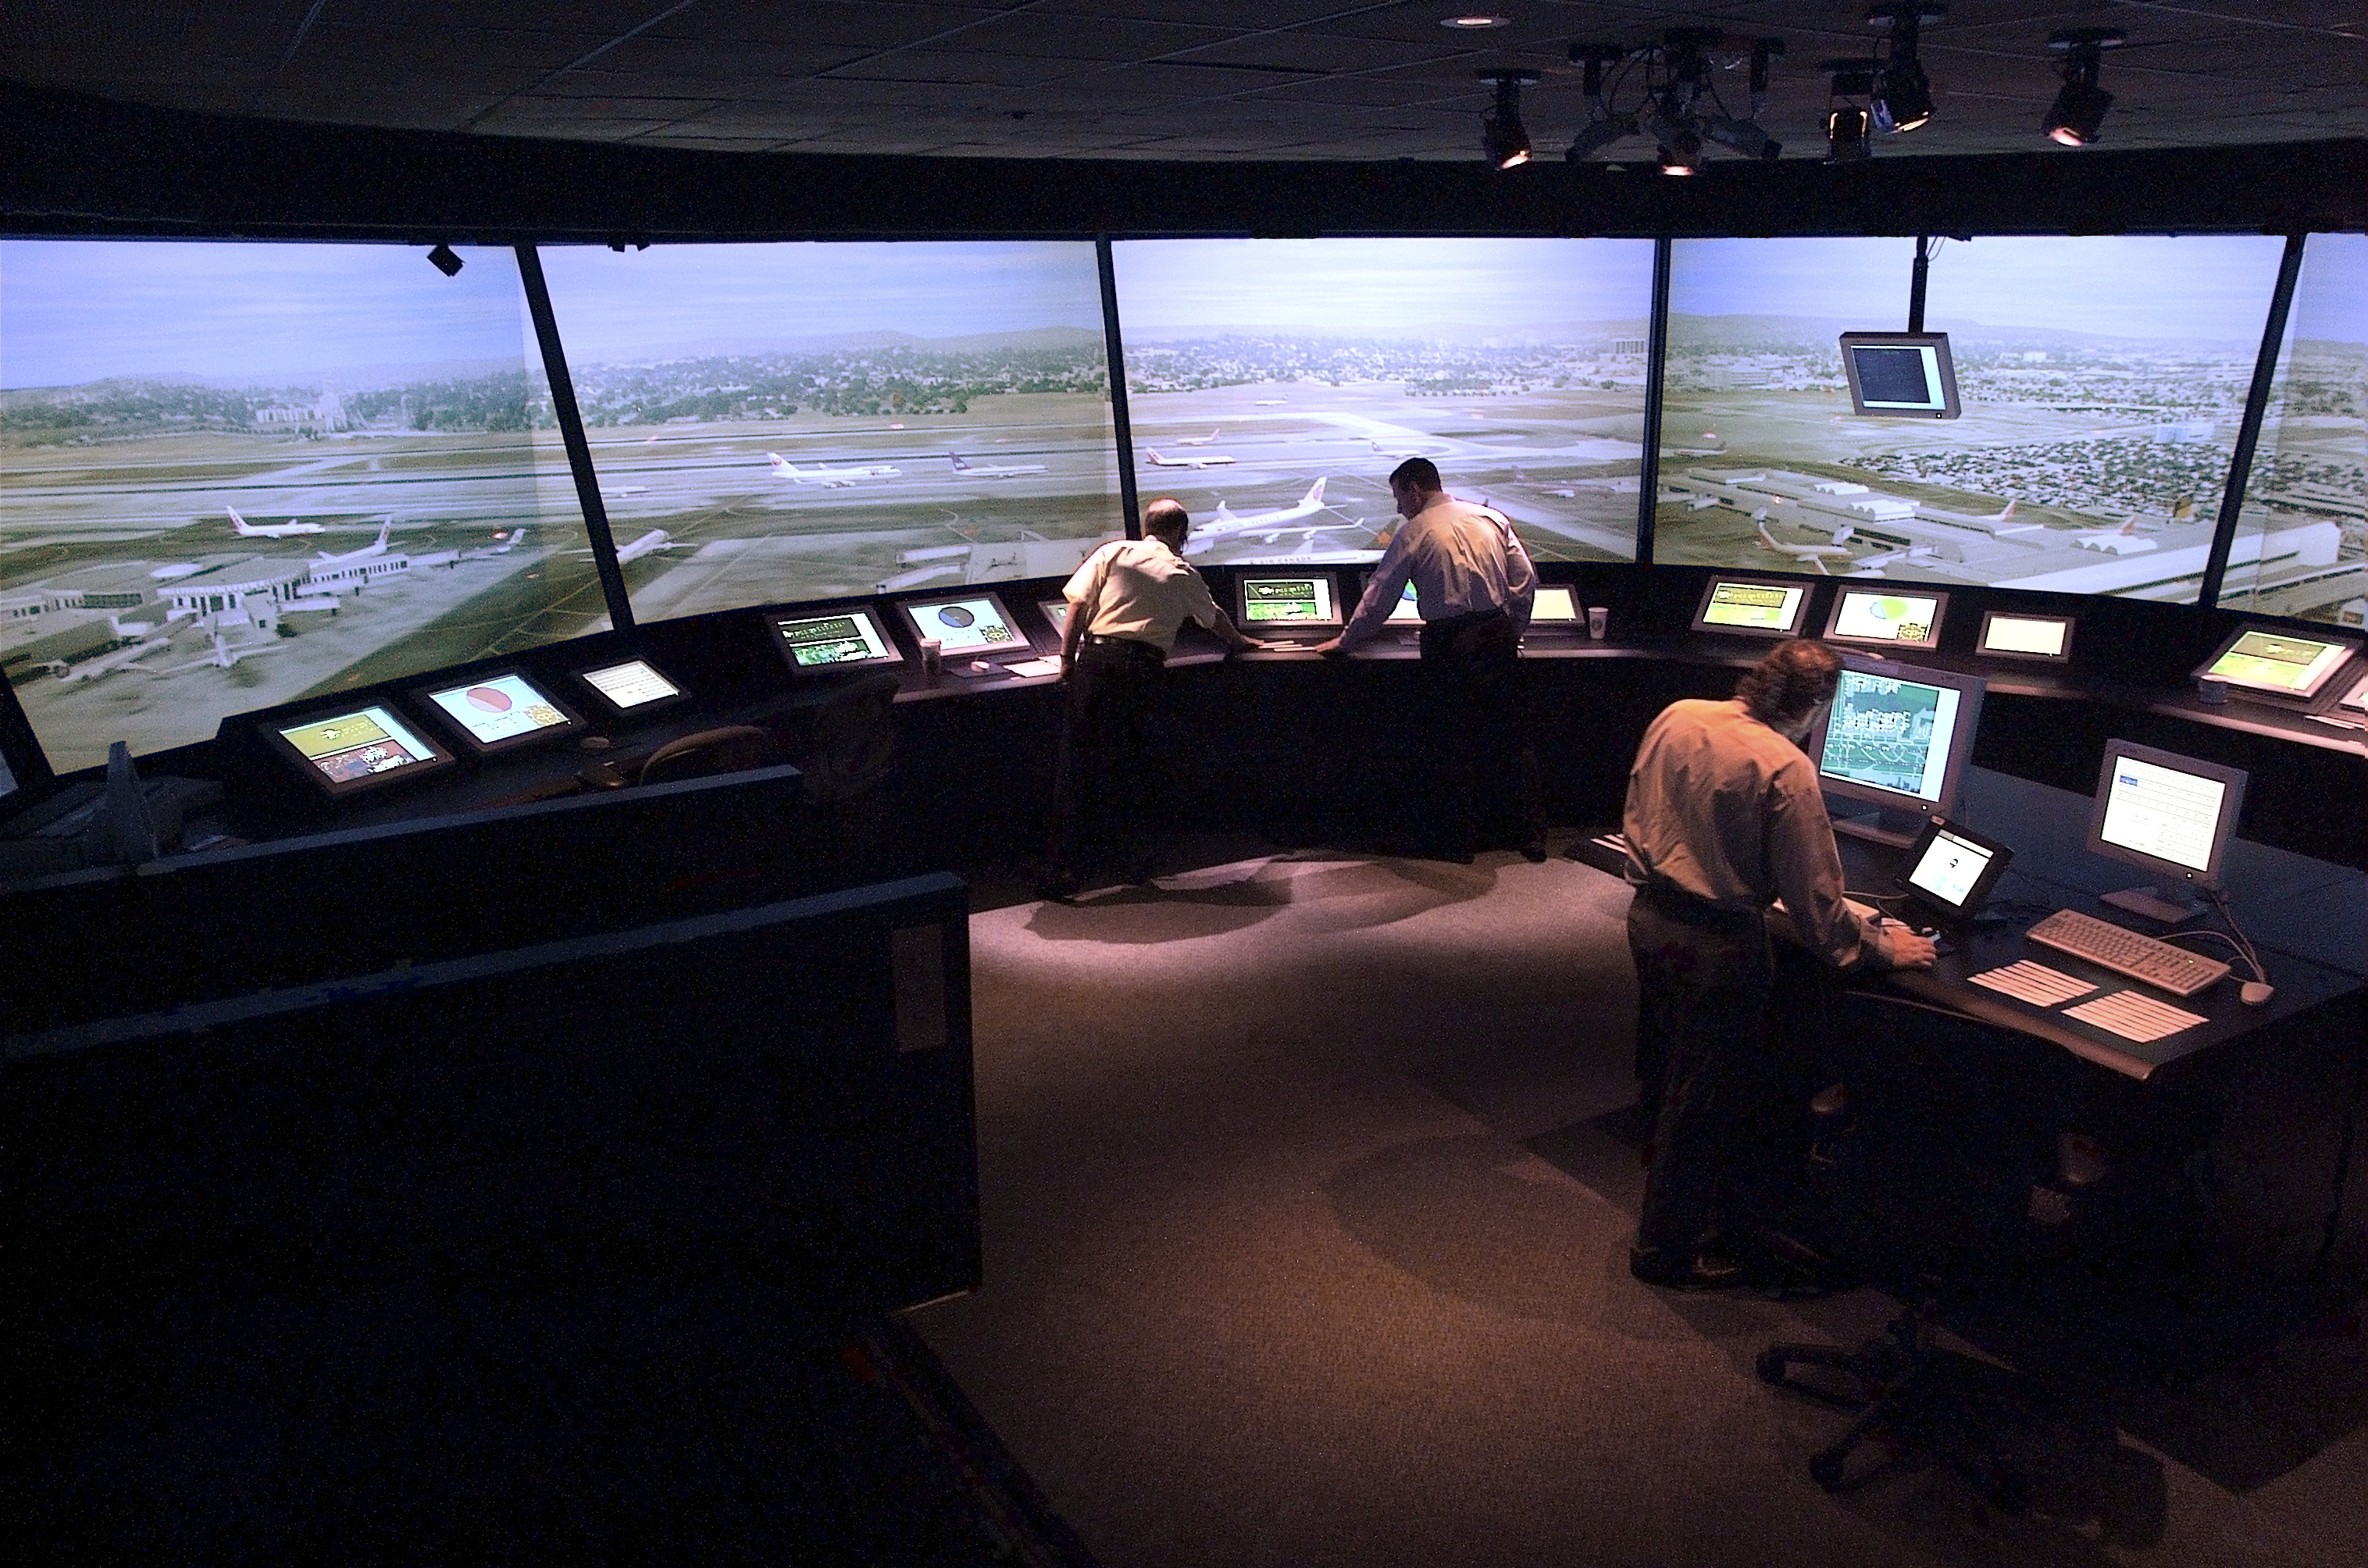 Nasa Developed Air Traffic Management Tool Deployed